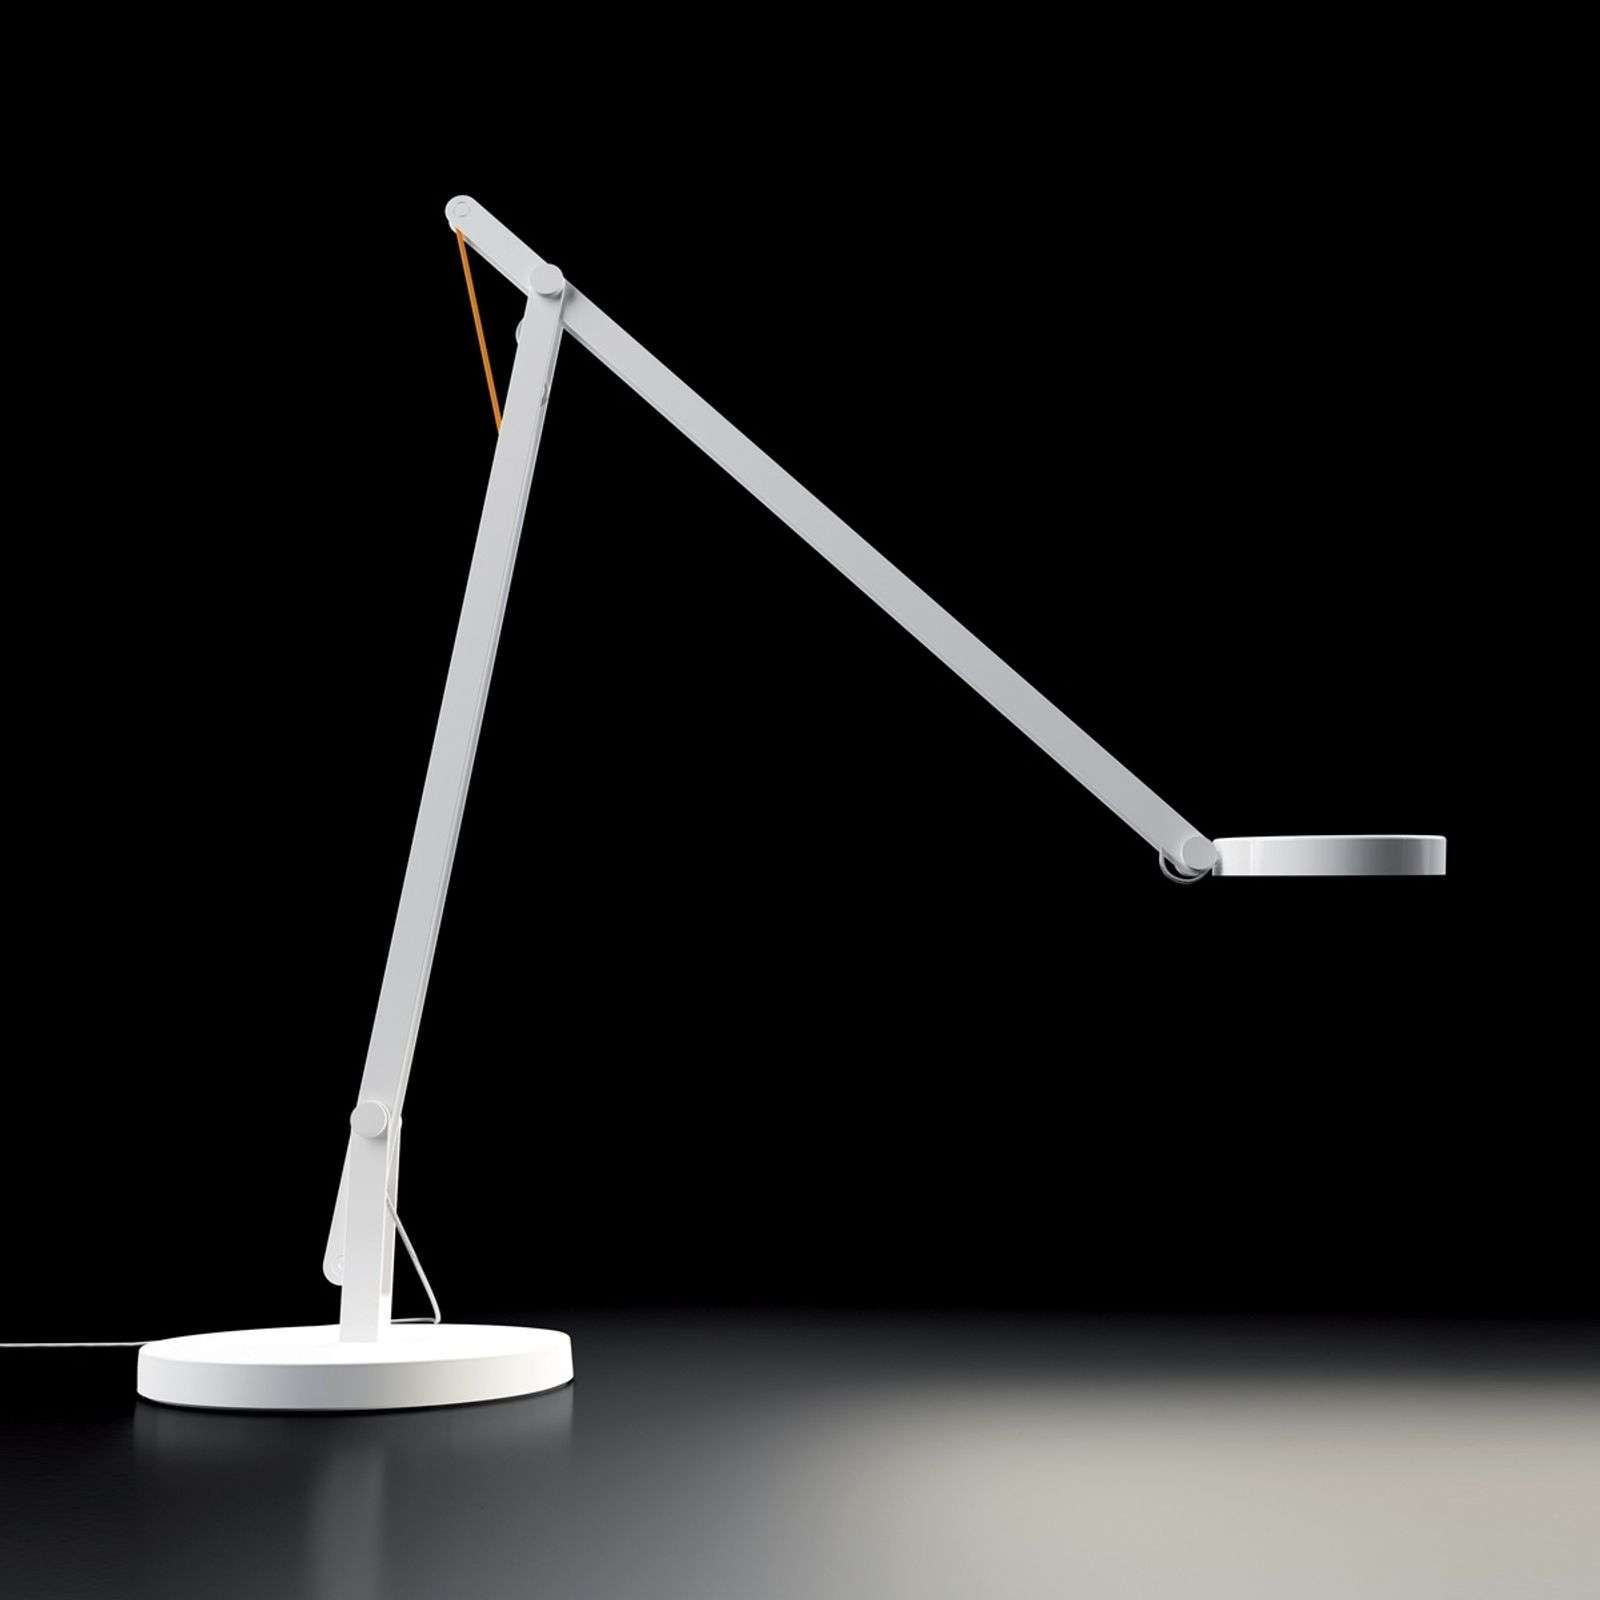 Lampe à poser LED Rotaliana String, blanche